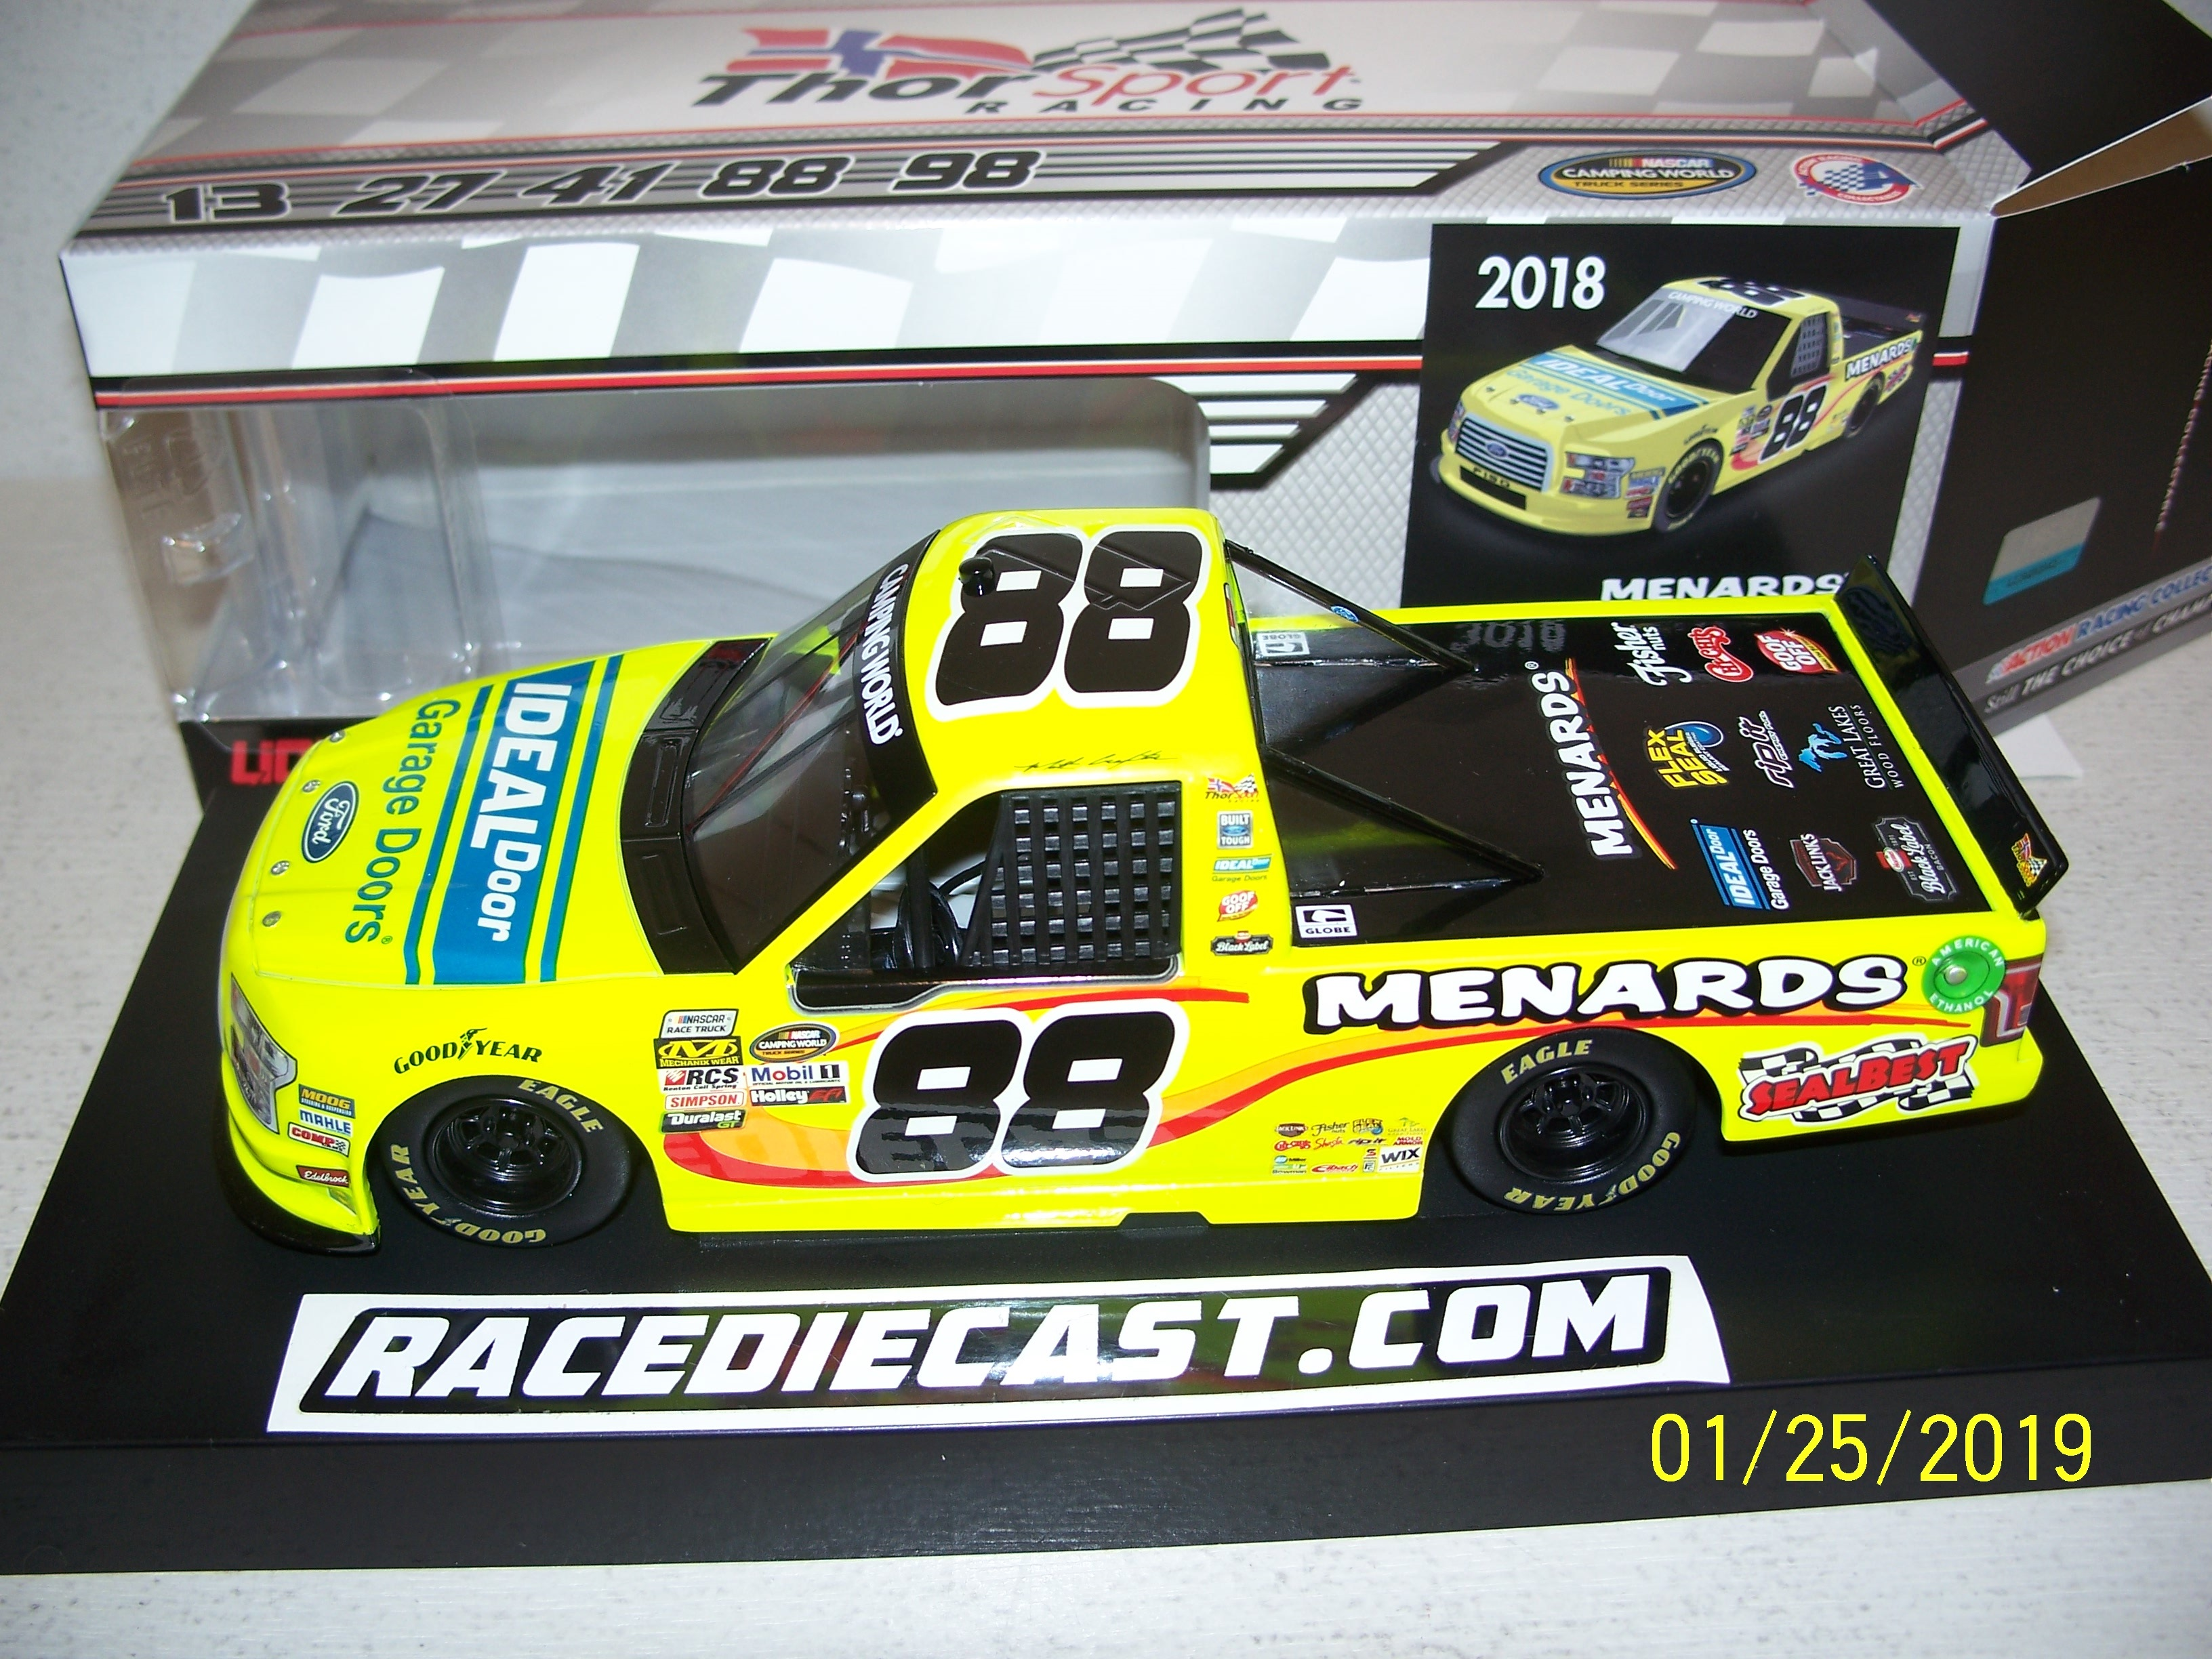 DIE CAST RACING COLLECTABLES - Super Trucks